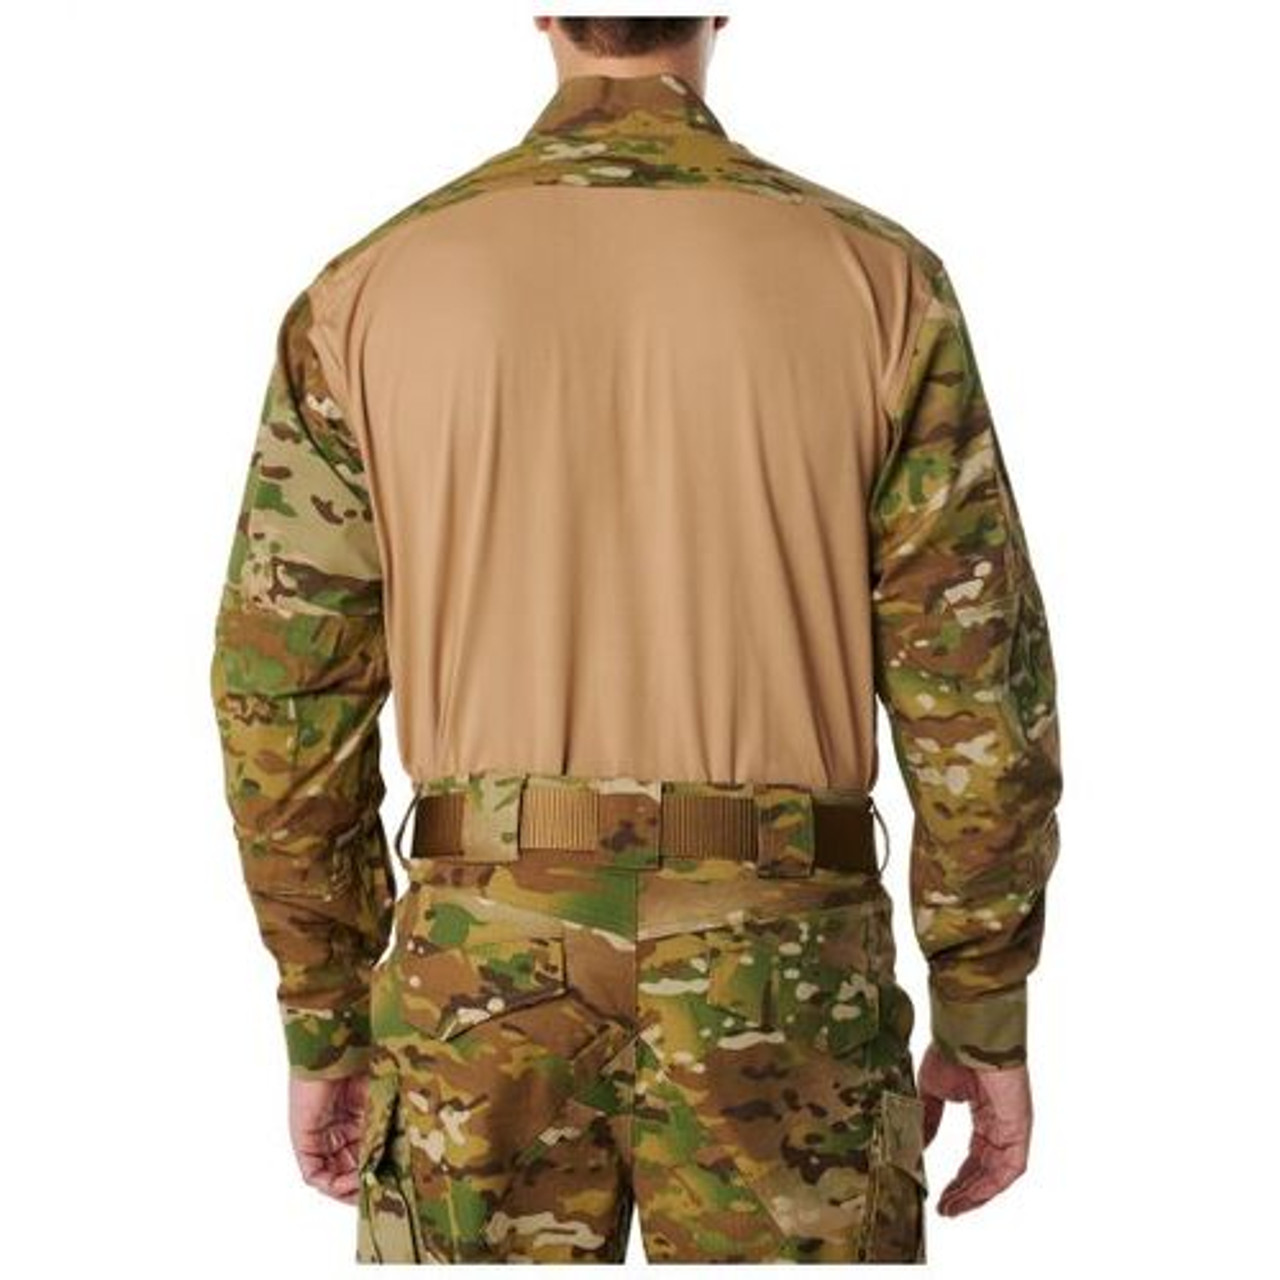 5.11 Tactical 72481 MEN'S 5.11 STRYKE® TDU®, Pullover, Long Sleeve Baselayer Uniform Shirt, 87% polyester / 13% Spandex, 1/4 Zip, Badge tab, Sleeve Pocket, Tan/MultiCam